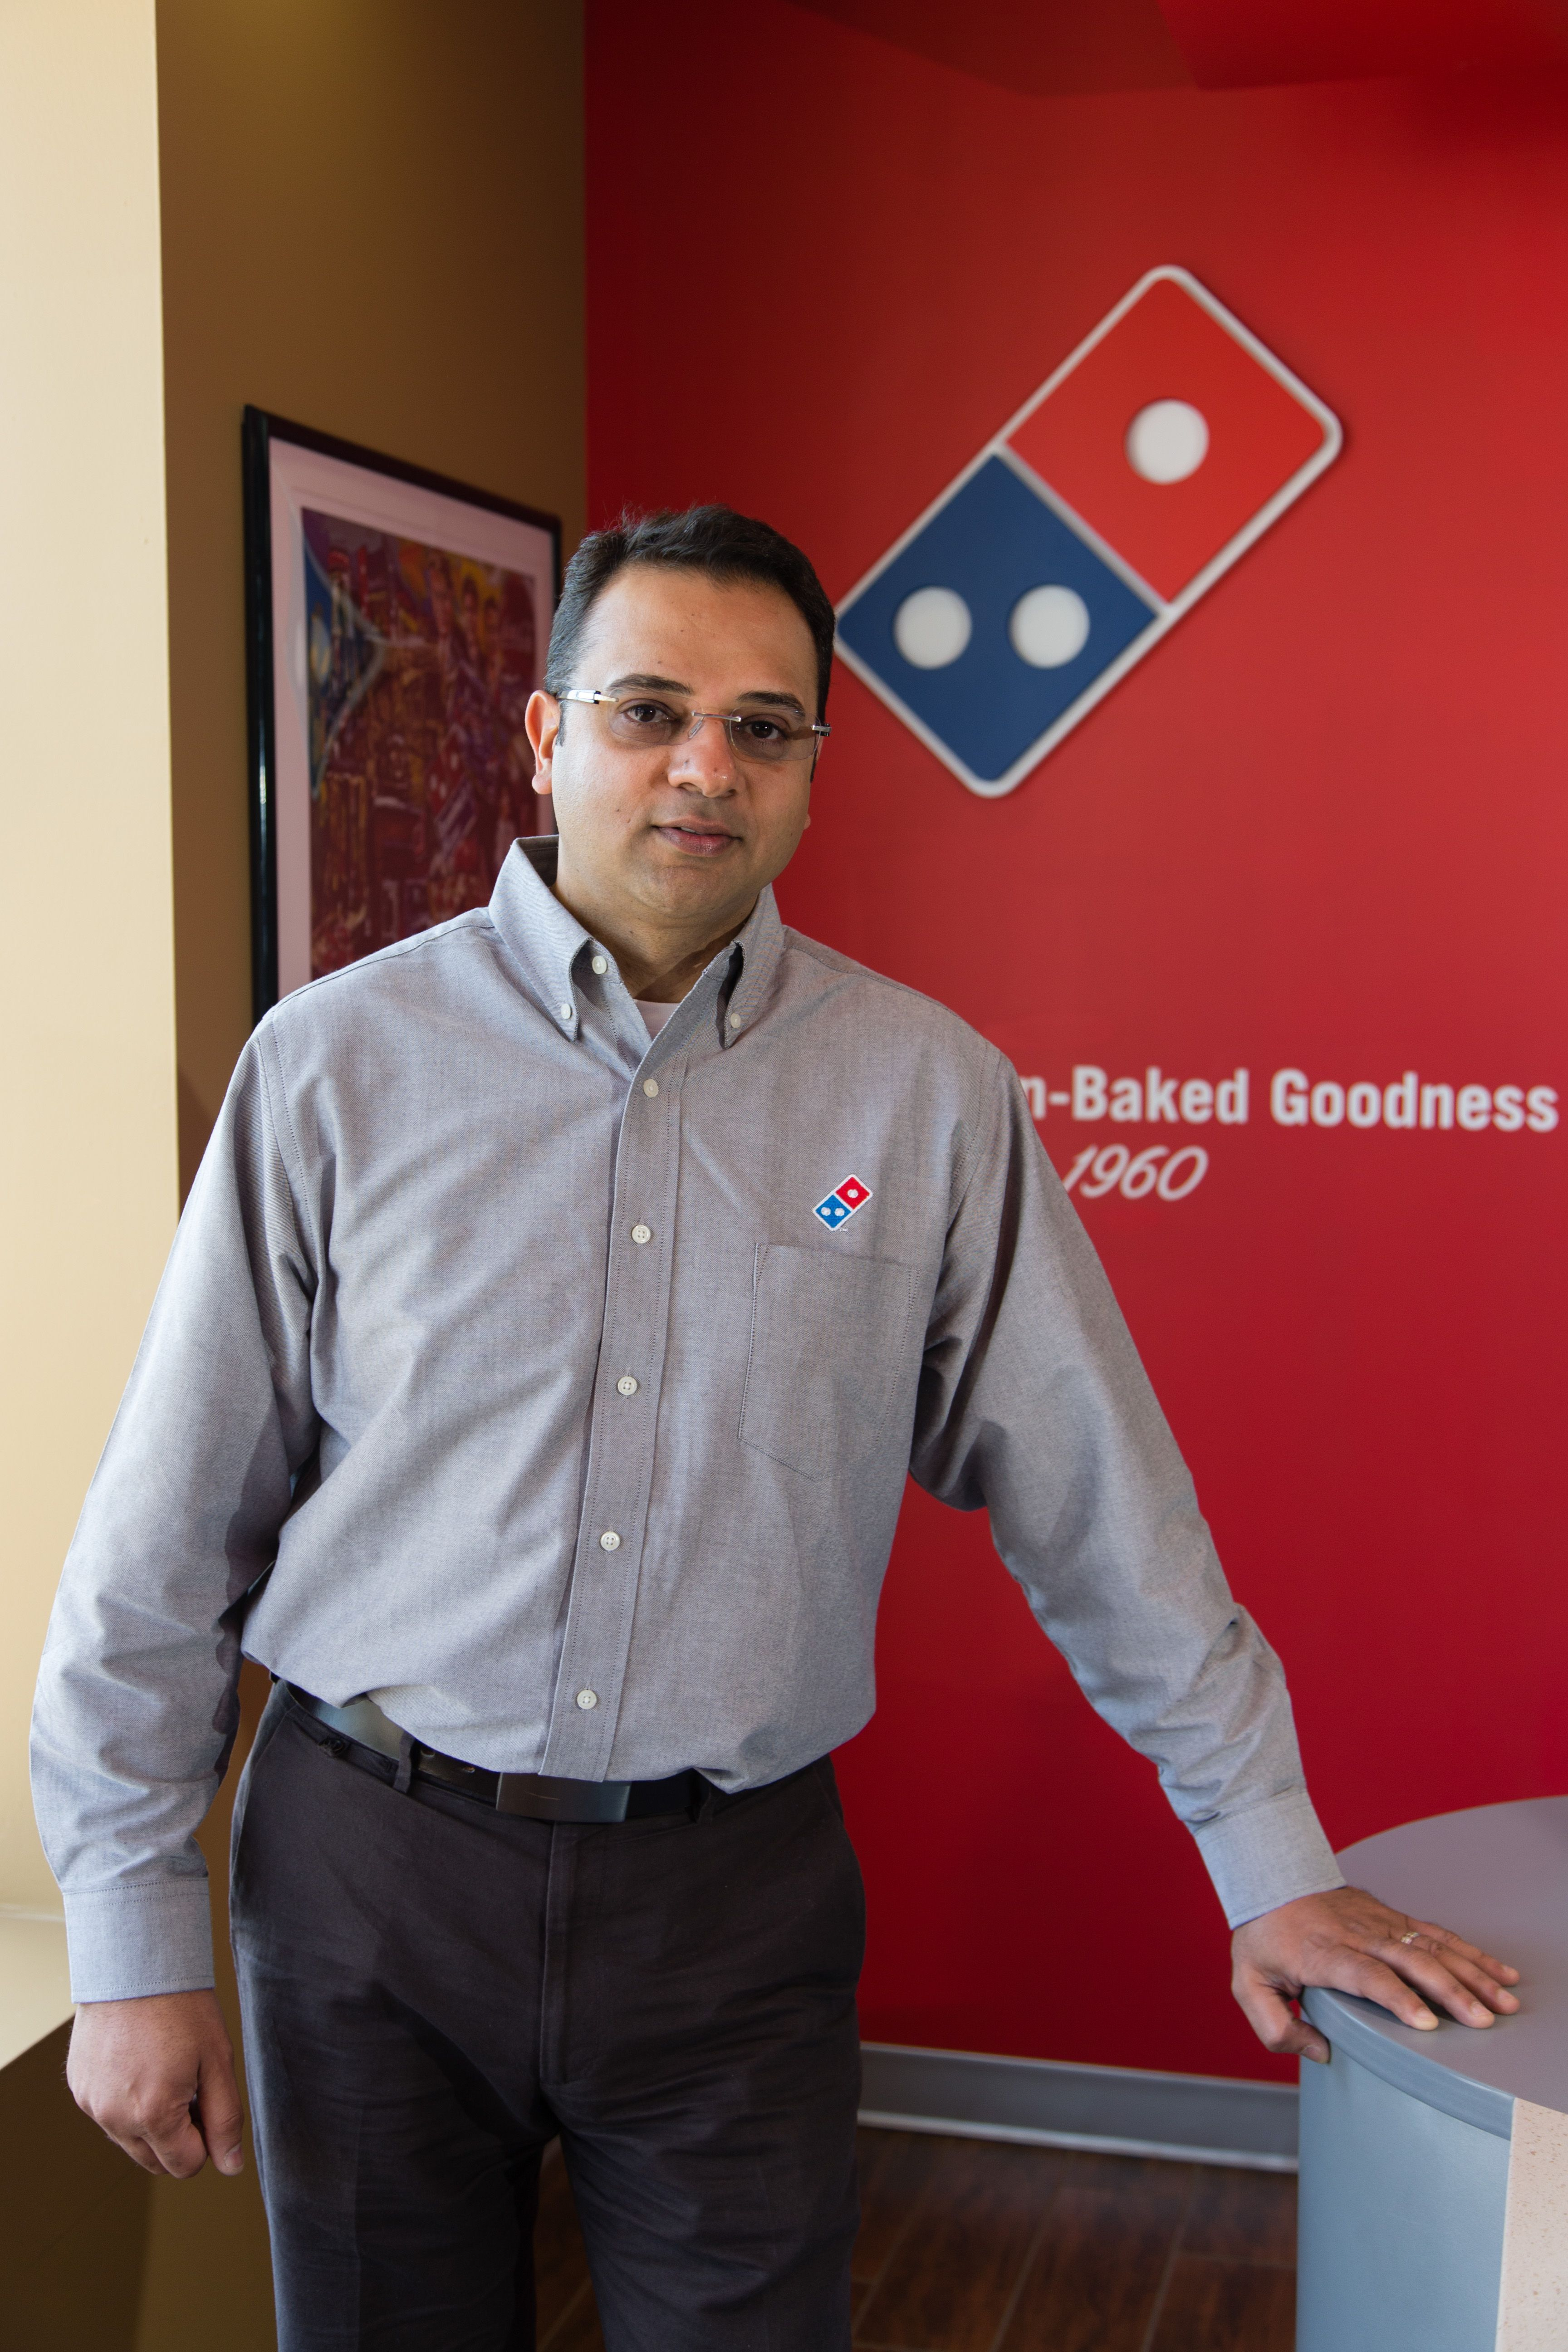 Ammar Jali Ammar Jali started his journey with Domino's as a part time driver in Long Island N.Y while studying at NYIT to become an Electrical Engineer. http://www.fivehundo.com/ammar-jali/